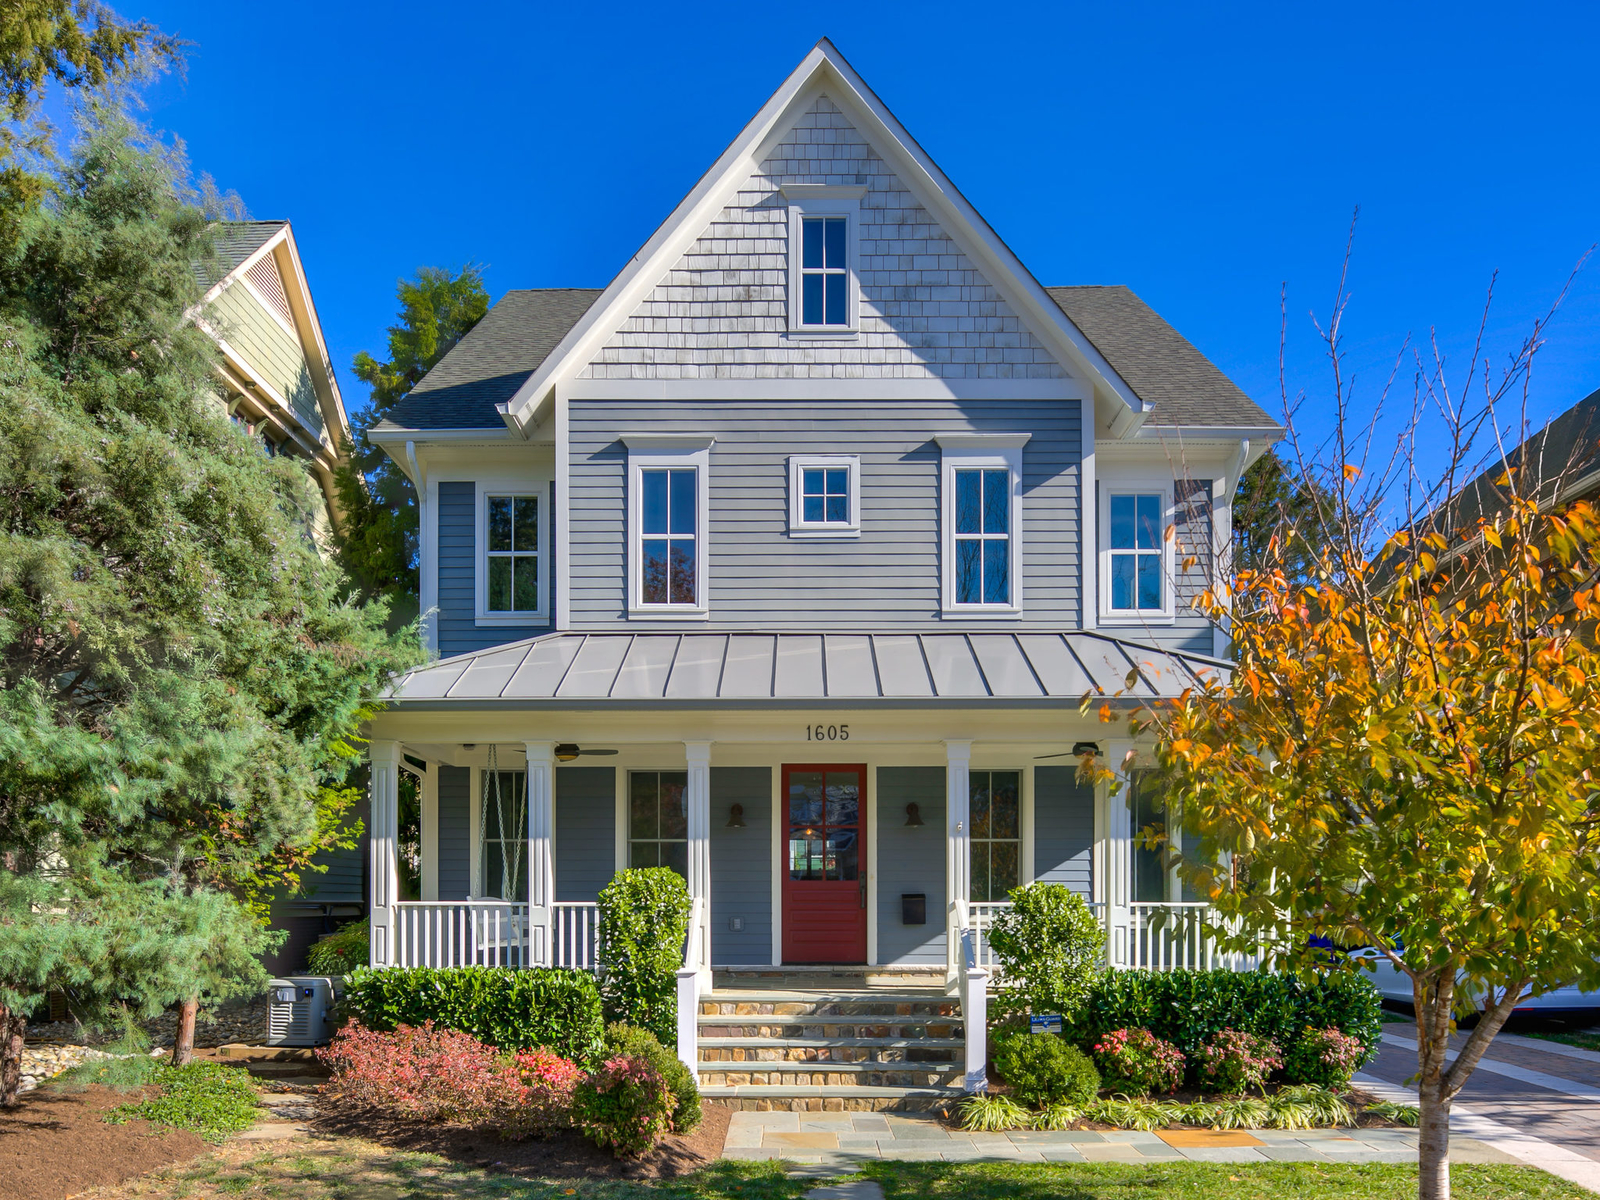 Single Family Home for Sale at Enjoy the Very Best of Lyon Village 1605 N Edgewood St Arlington, Virginia, 22201 United States